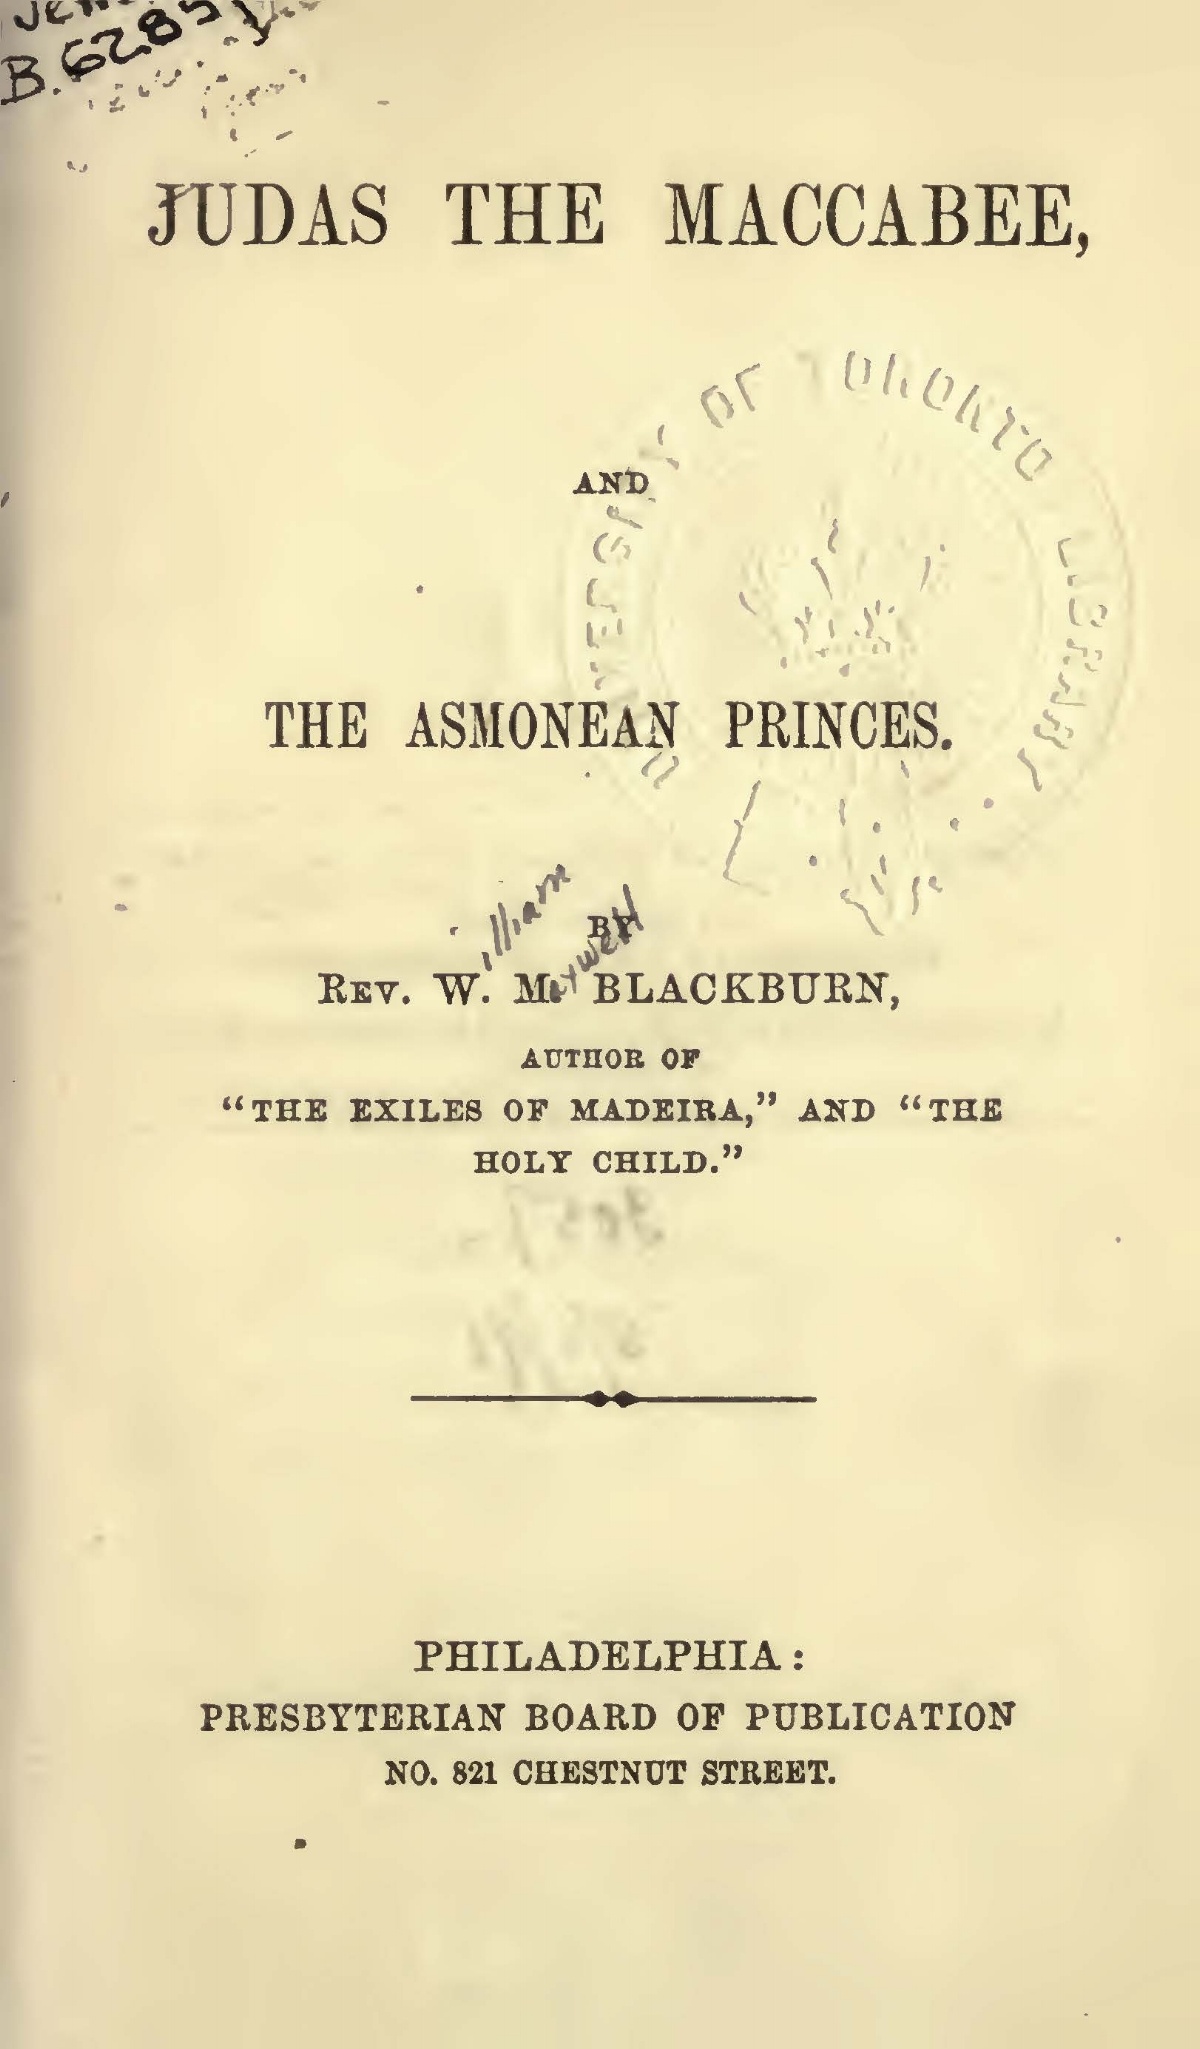 Blackburn, William Maxwell, Judas the Maccabee and the Asmonean Princes Title Page.jpg